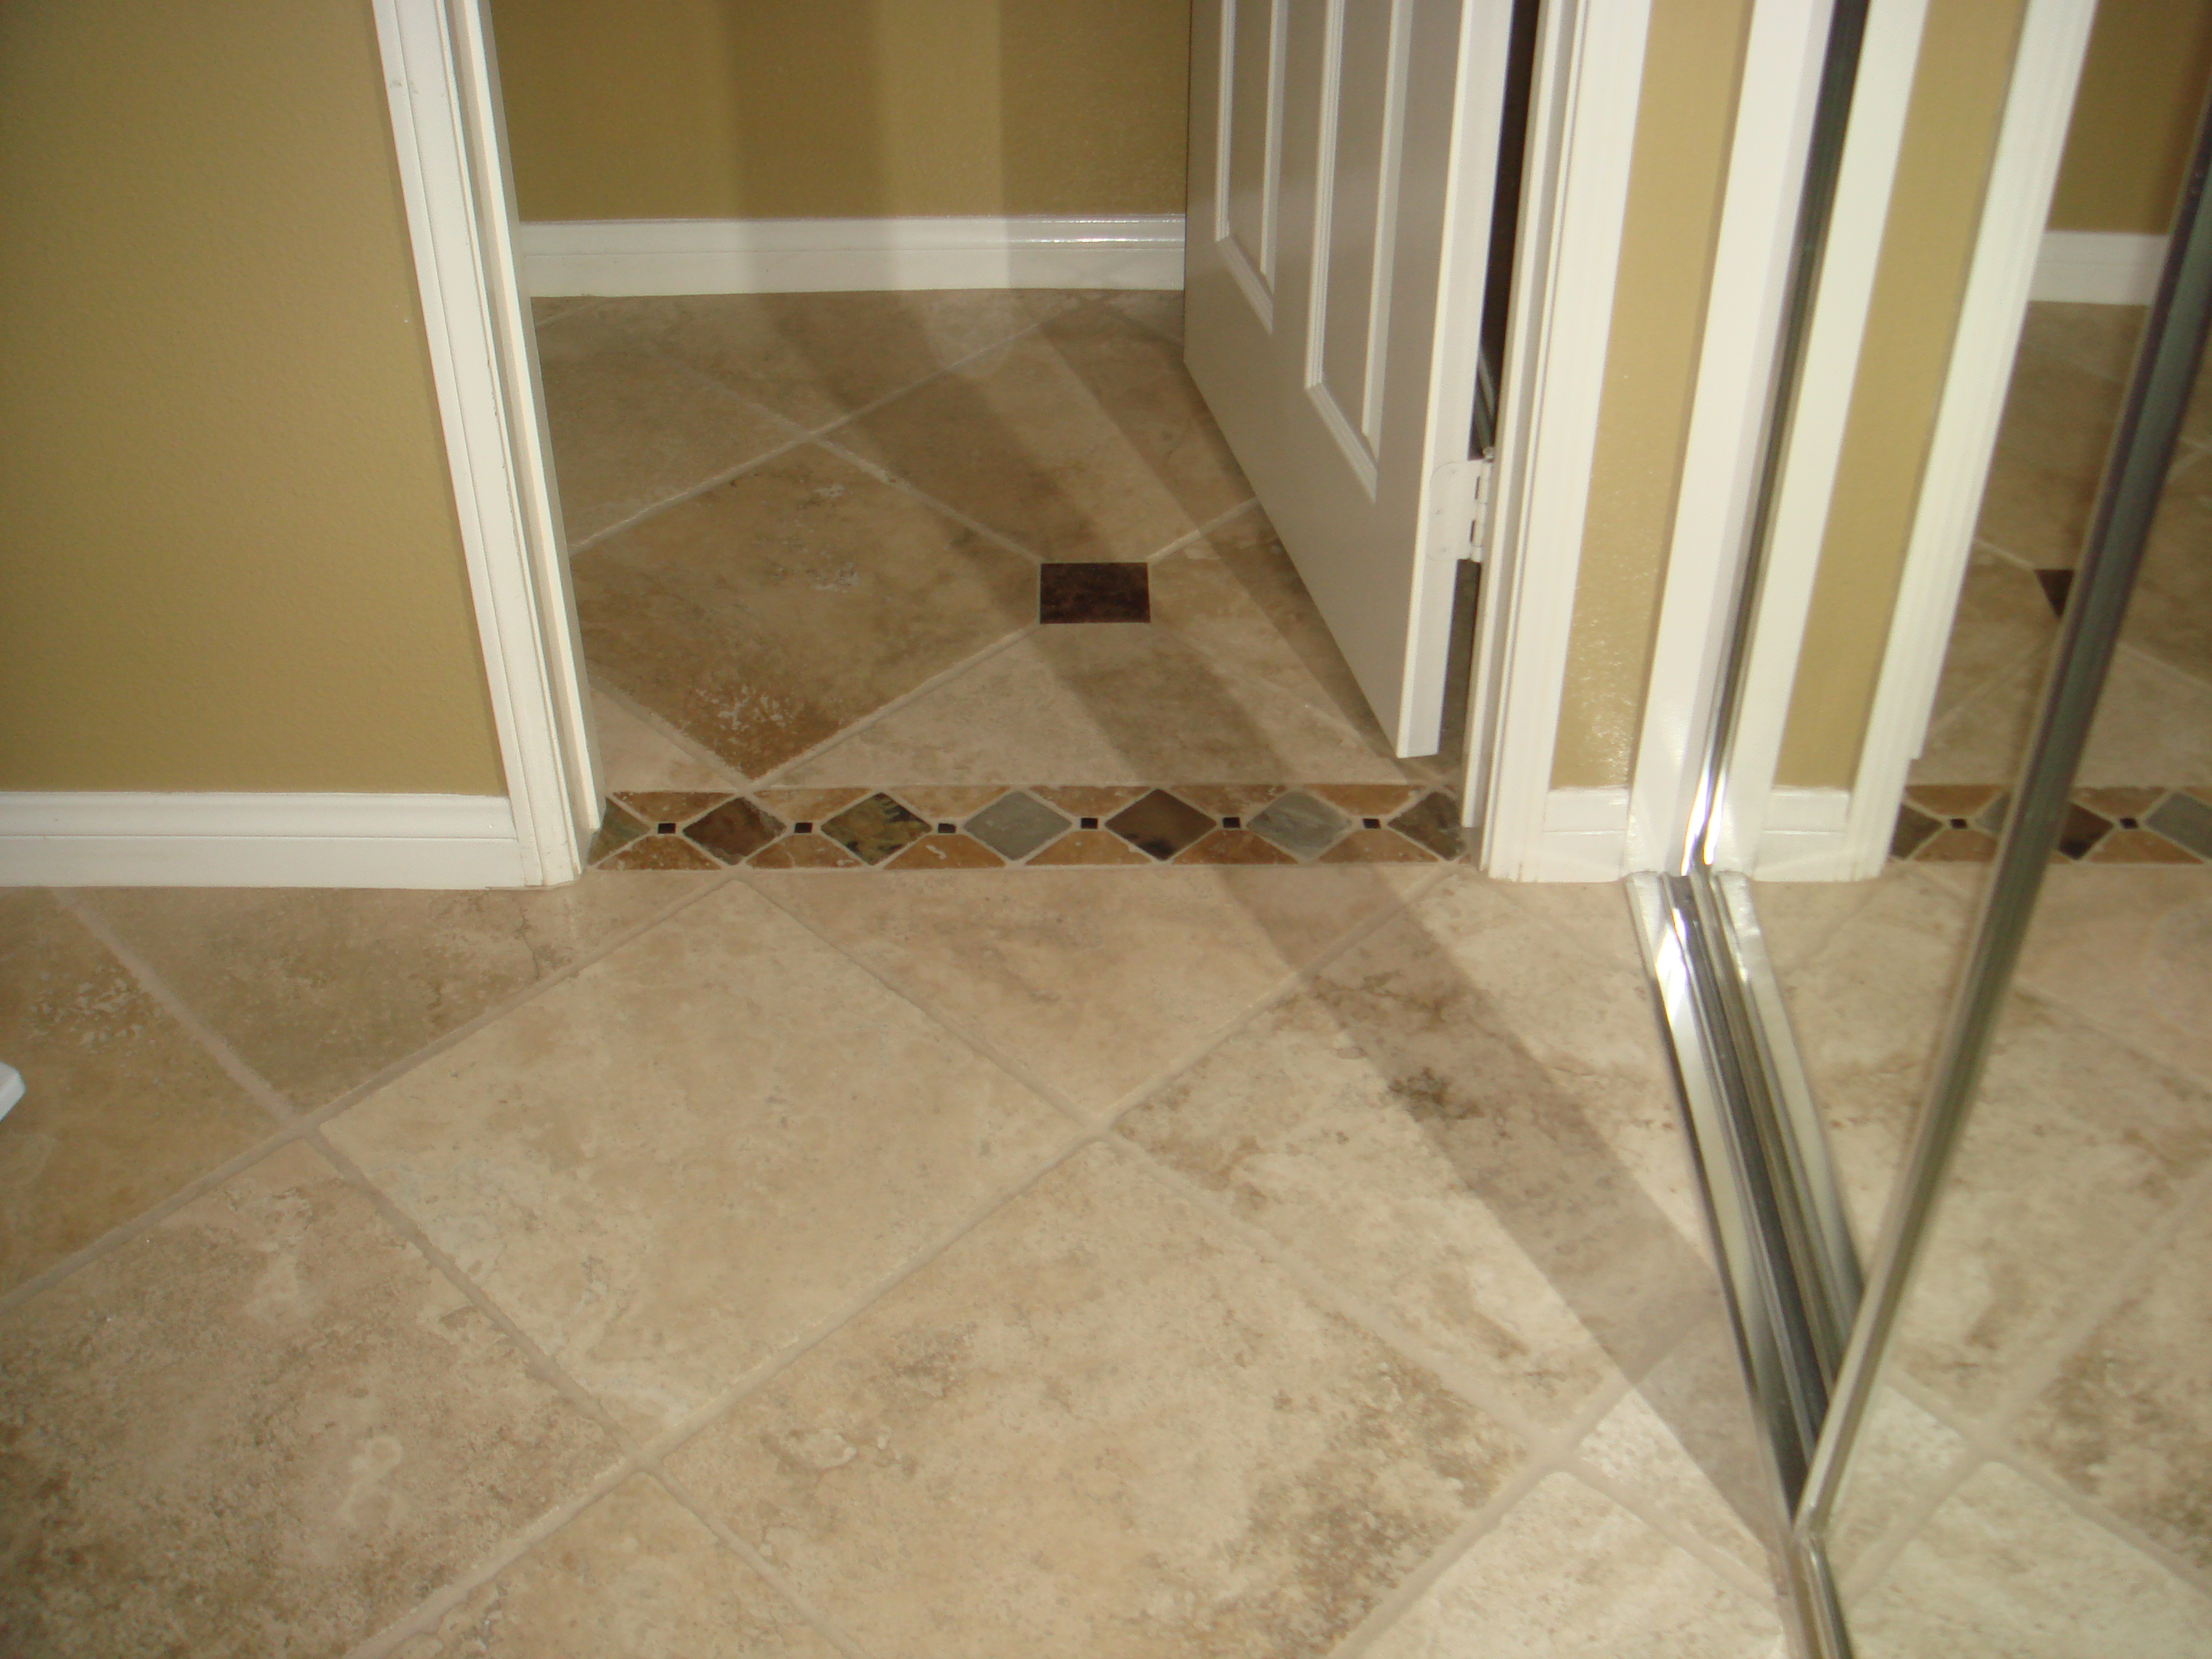 Installing bathroom floor tile large and beautiful for Tile floor installation